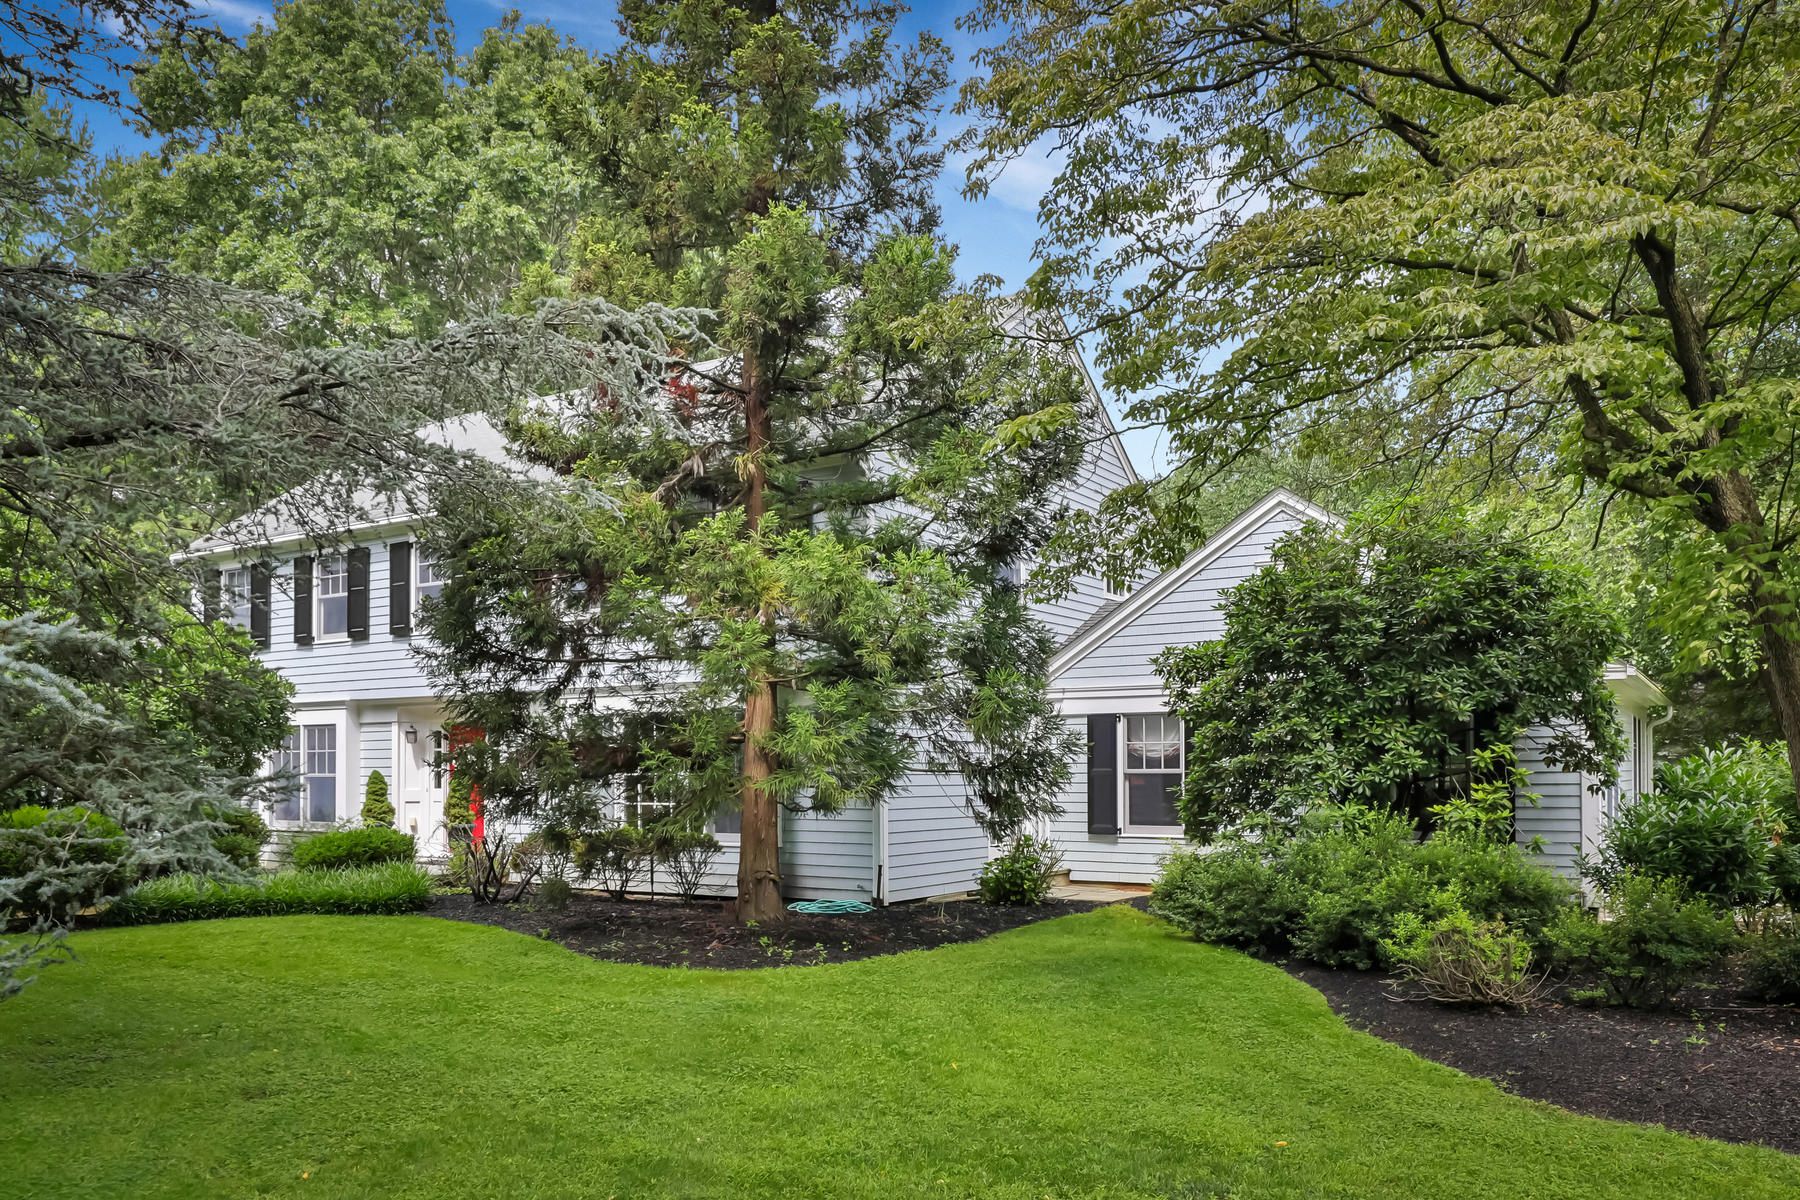 Single Family Homes for Active at Elegant Rumson Colonial 8 Woodside Drive Rumson, New Jersey 07760 United States